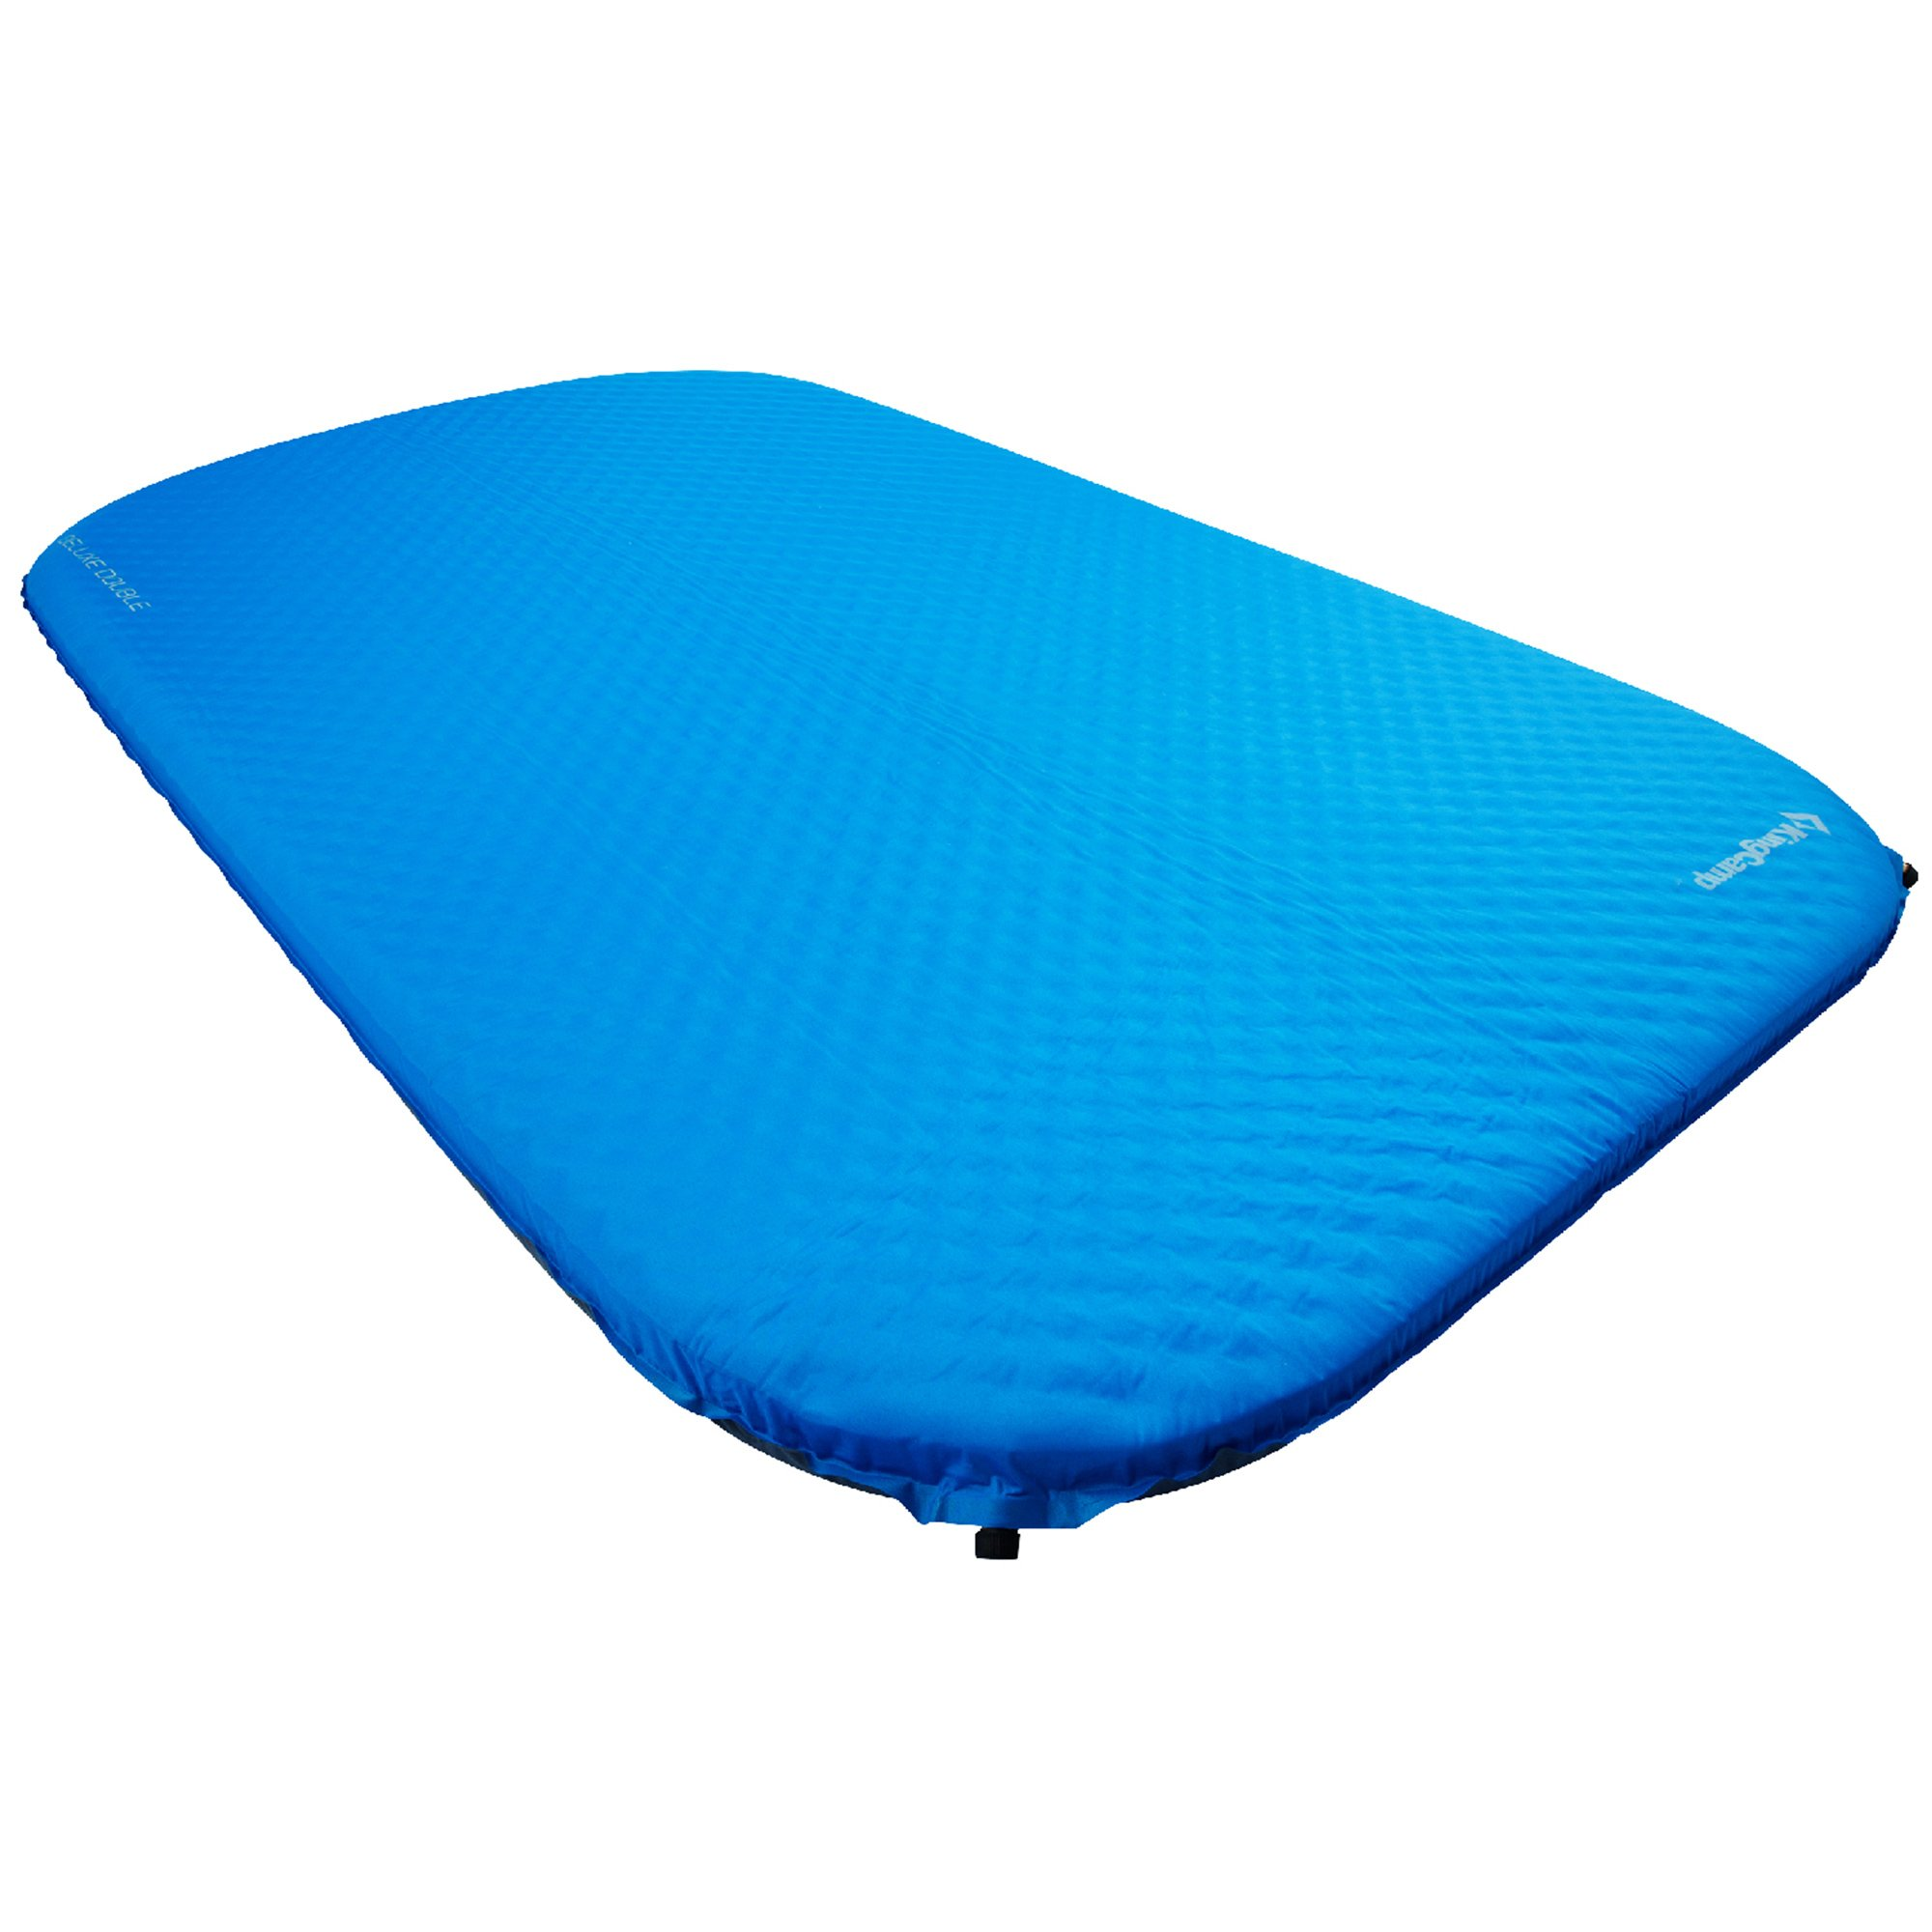 KingCamp Camping Double Sleeping Pad Foam Mat Mattress - Self Inflating Thick Pad with Carry Bag, Suitable for Traveling Hiking Family Outdoor Activities (Blue-Deluxe Double) by KingCamp